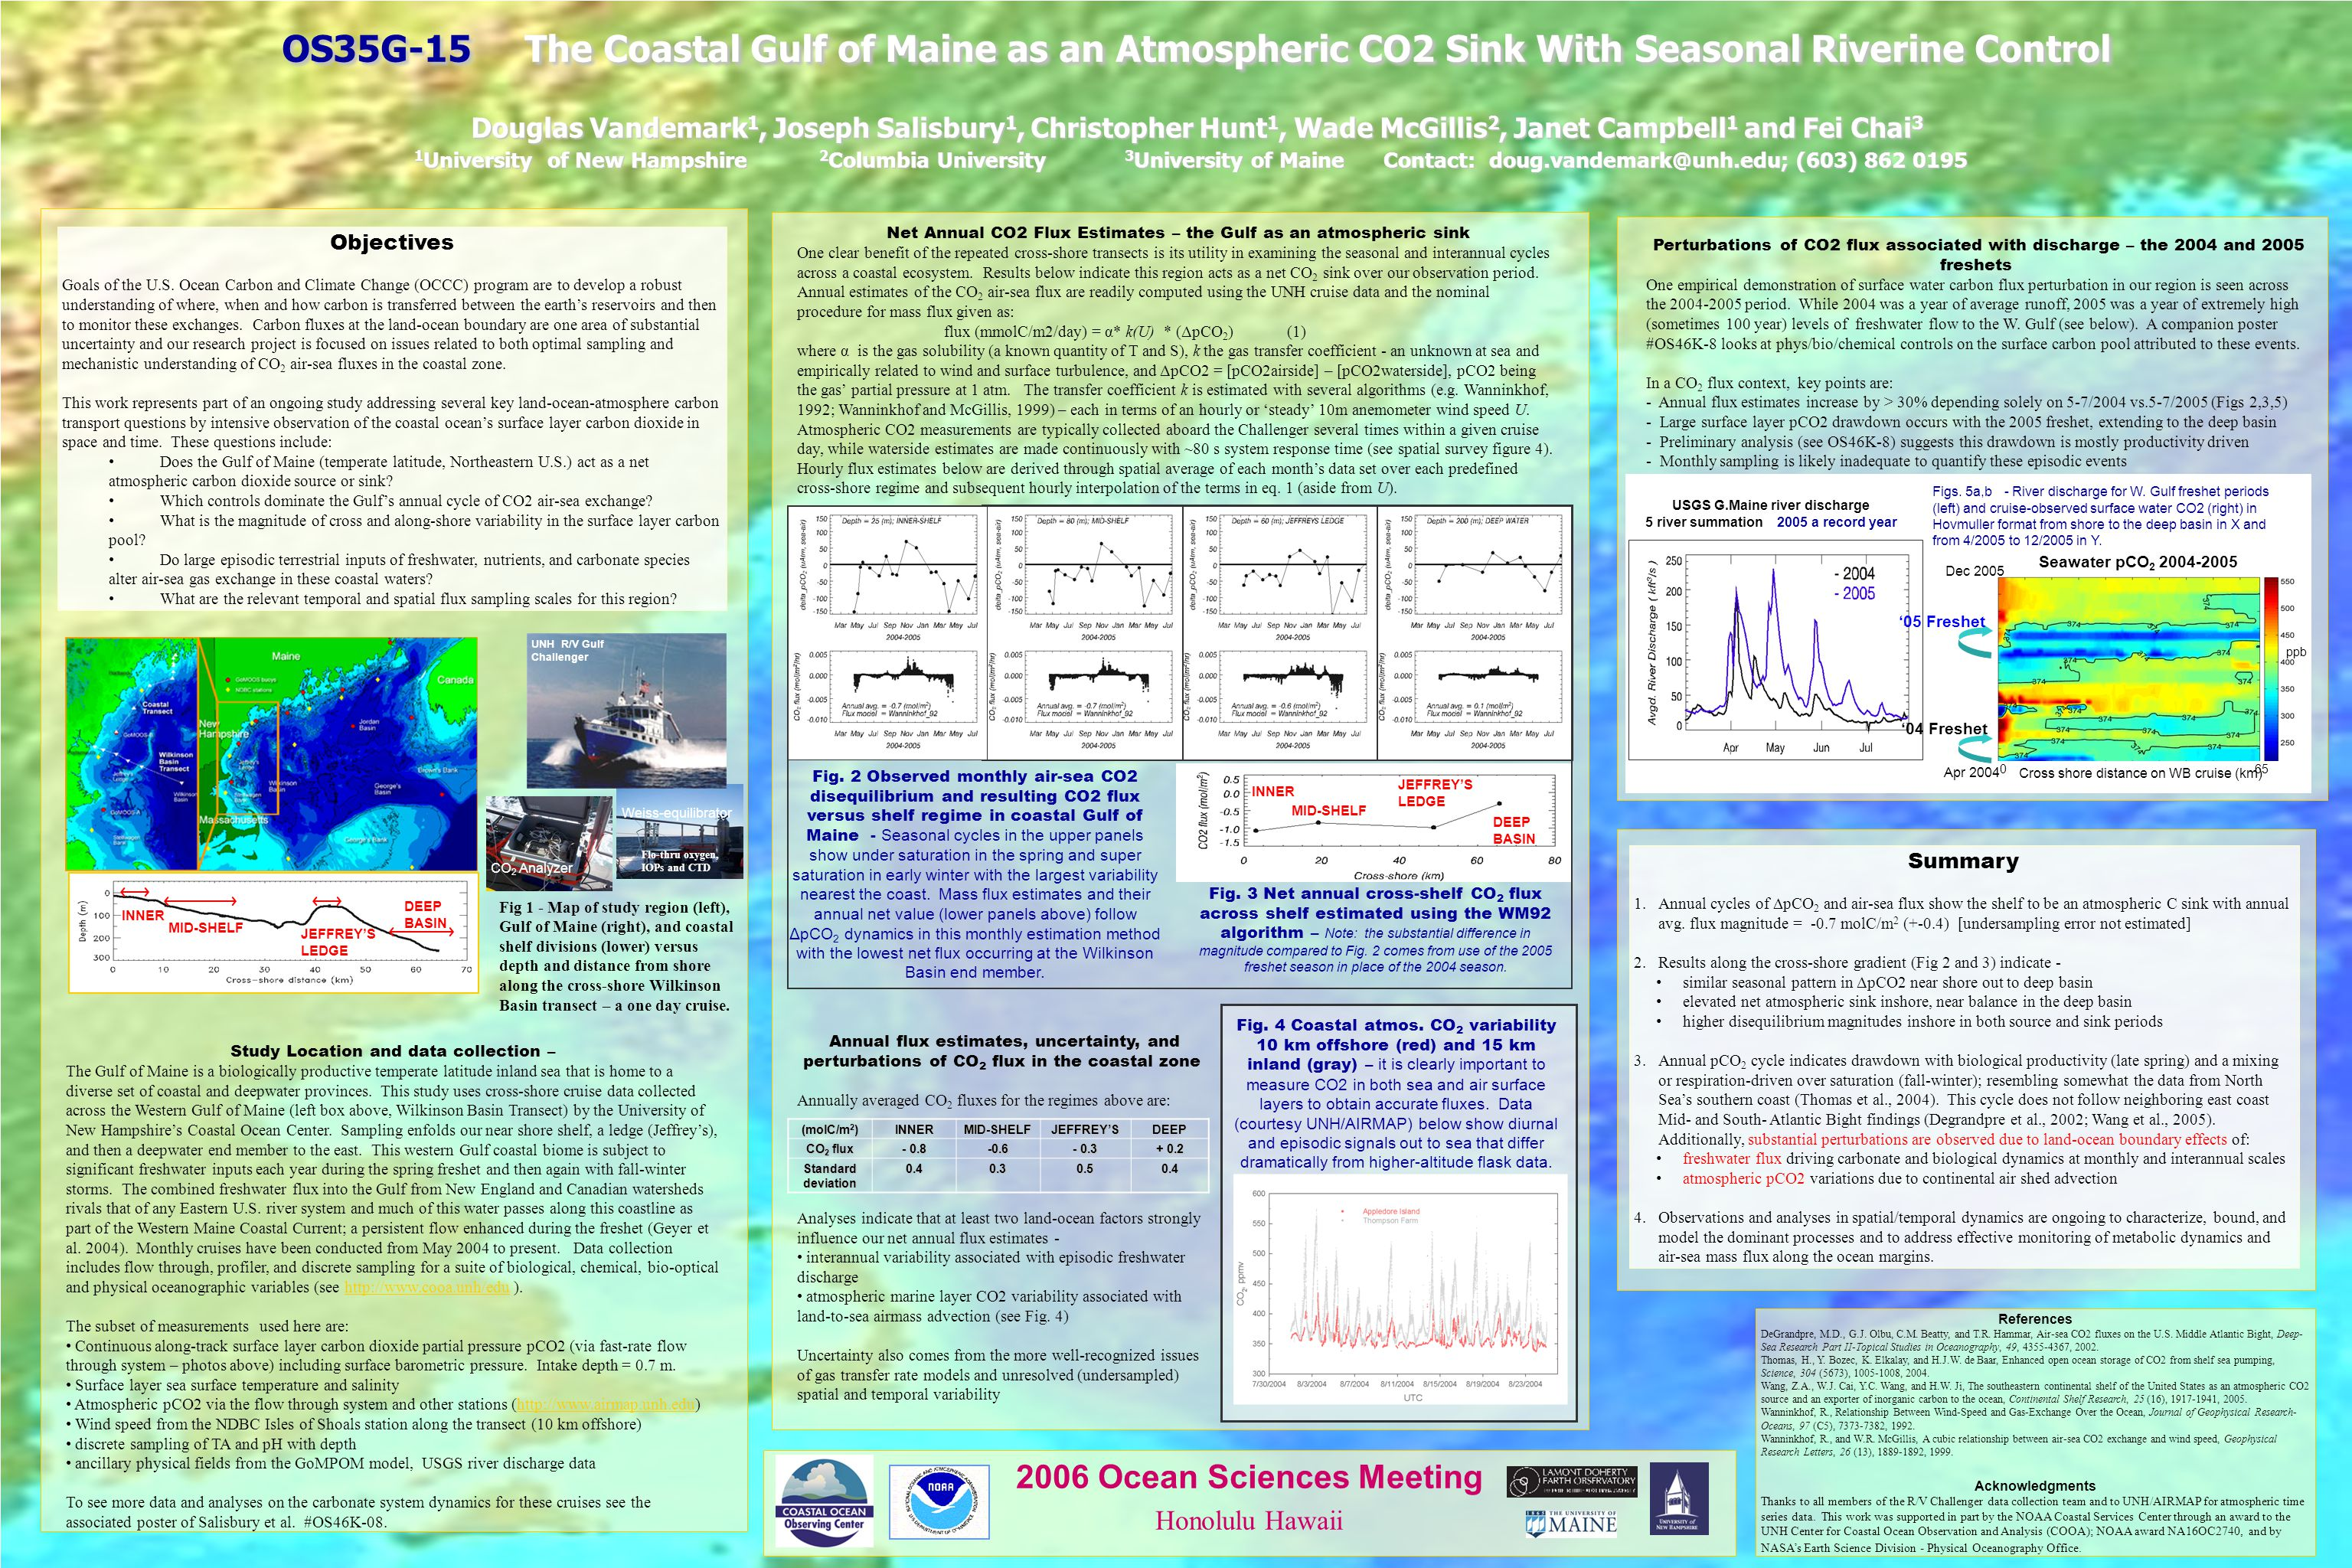 OS35G-15 The Coastal Gulf of Maine as an Atmospheric CO2 Sink With Seasonal Riverine Control Douglas Vandemark 1, Joseph Salisbury 1, Christopher Hunt 1, Wade McGillis 2, Janet Campbell 1 and Fei Chai 3 1 University of New Hampshire 2 Columbia University 3 University of Maine Contact: doug.vandemark@unh.edu; (603) 862 0195 OS35G-15 The Coastal Gulf of Maine as an Atmospheric CO2 Sink With Seasonal Riverine Control Douglas Vandemark 1, Joseph Salisbury 1, Christopher Hunt 1, Wade McGillis 2, Janet Campbell 1 and Fei Chai 3 1 University of New Hampshire 2 Columbia University 3 University of Maine Contact: doug.vandemark@unh.edu; (603) 862 0195 2006 Ocean Sciences Meeting Honolulu Hawaii References DeGrandpre, M.D., G.J.